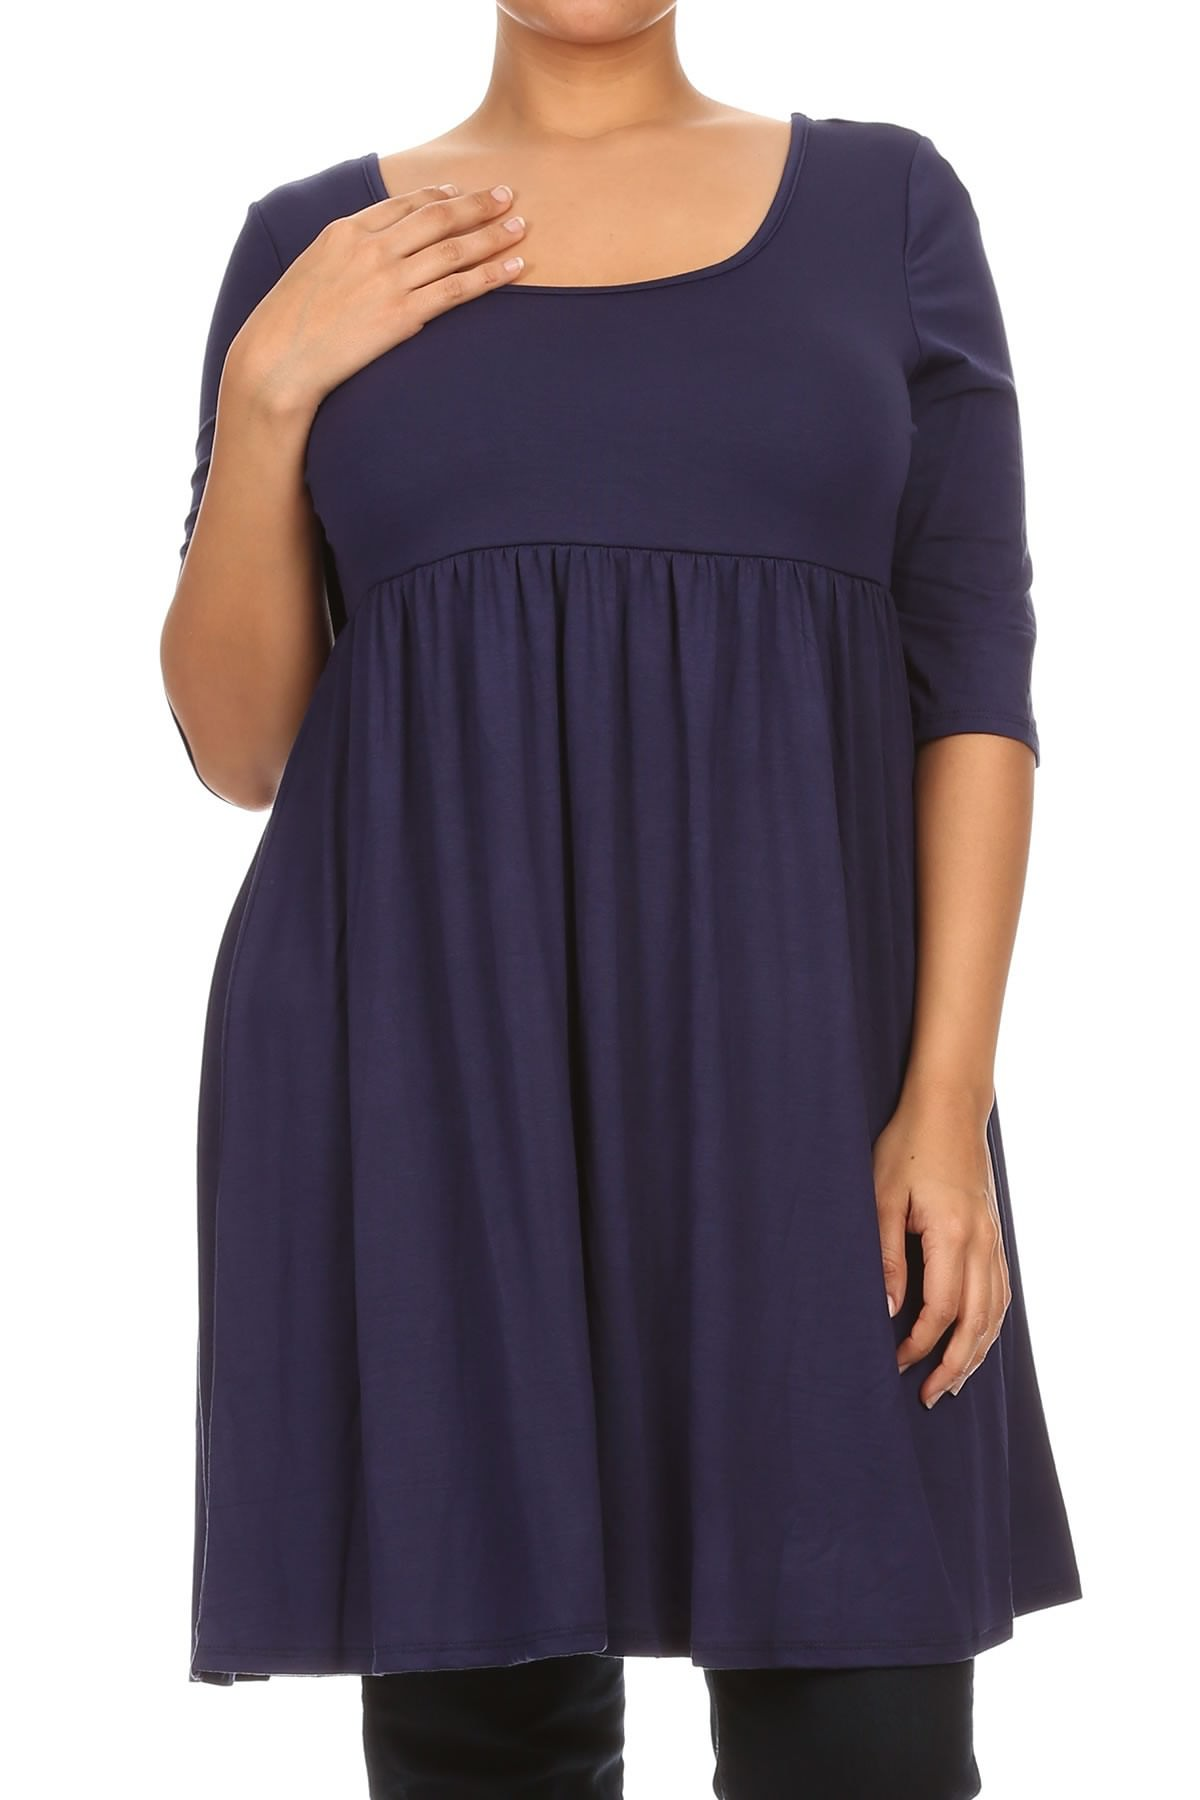 Women Plus Size Half Sleeve Solid Babydoll Casual Tunic Top Dress Navy XL (D240 SD)